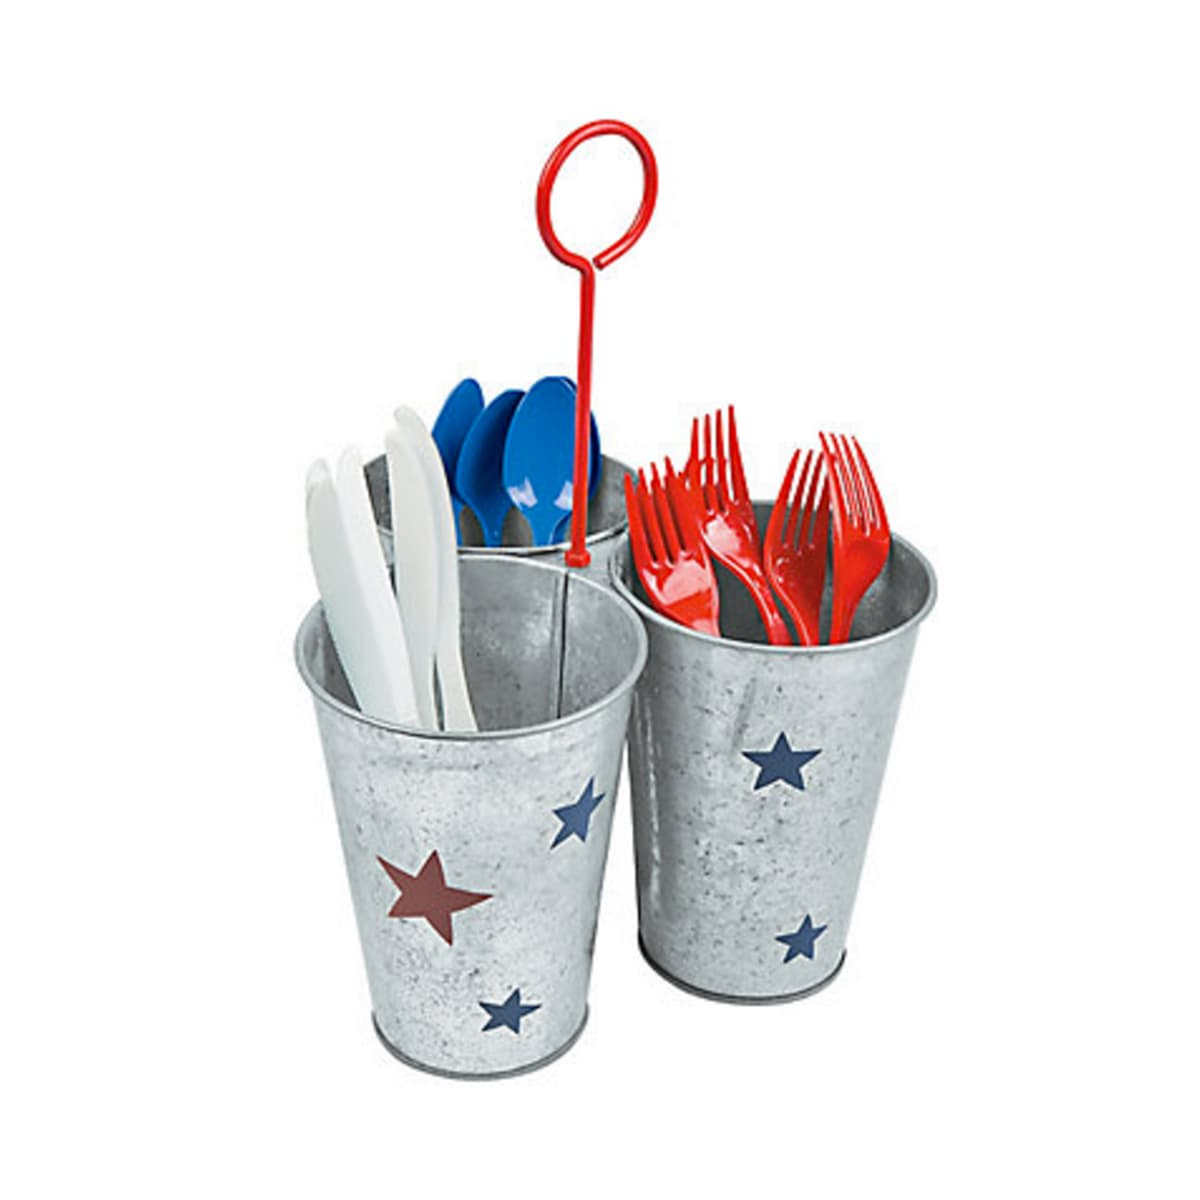 10 Festive 4th of July Decorations for $10 or Less: gallery image 11